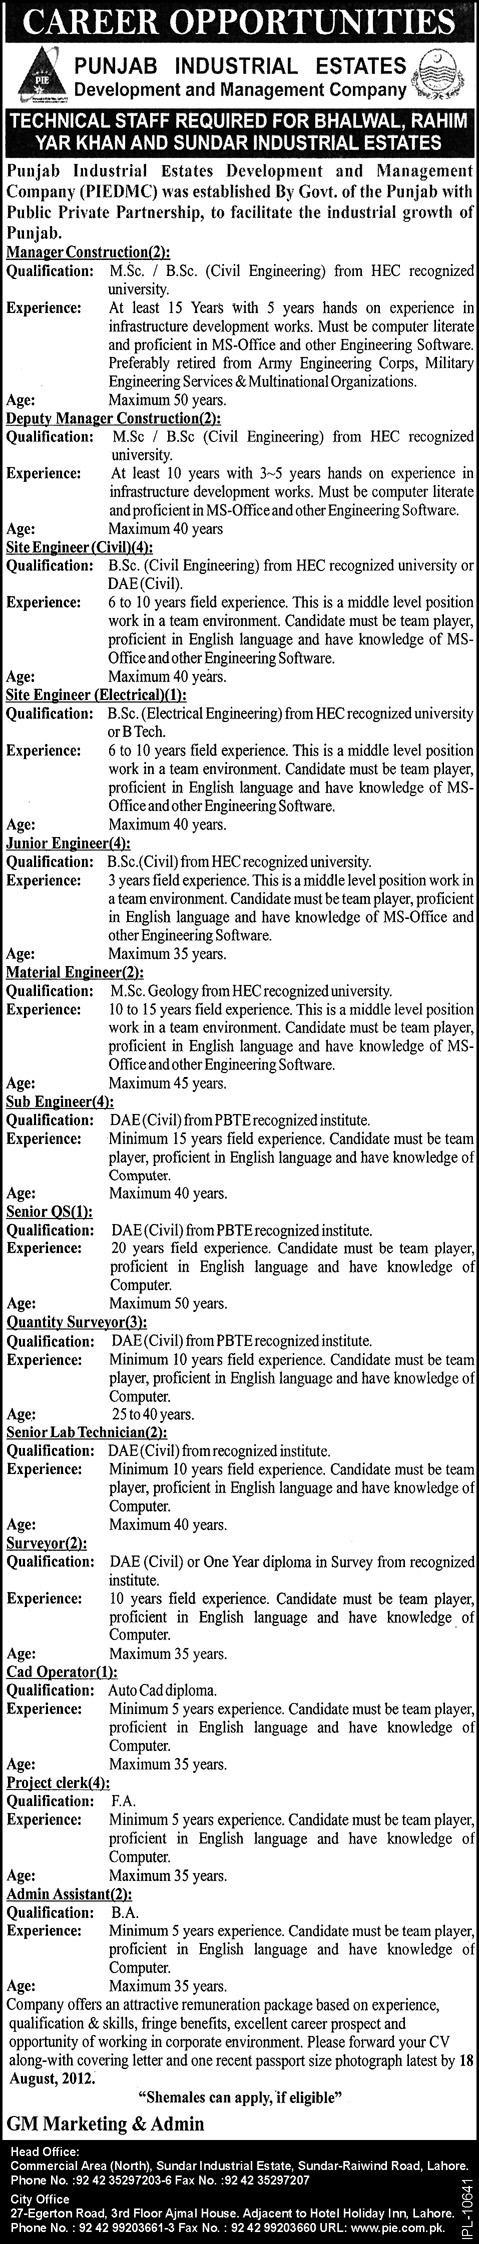 jobs in punjab industrial estates Technical Staff Jobs in Punjab Industrial Estates Development Company